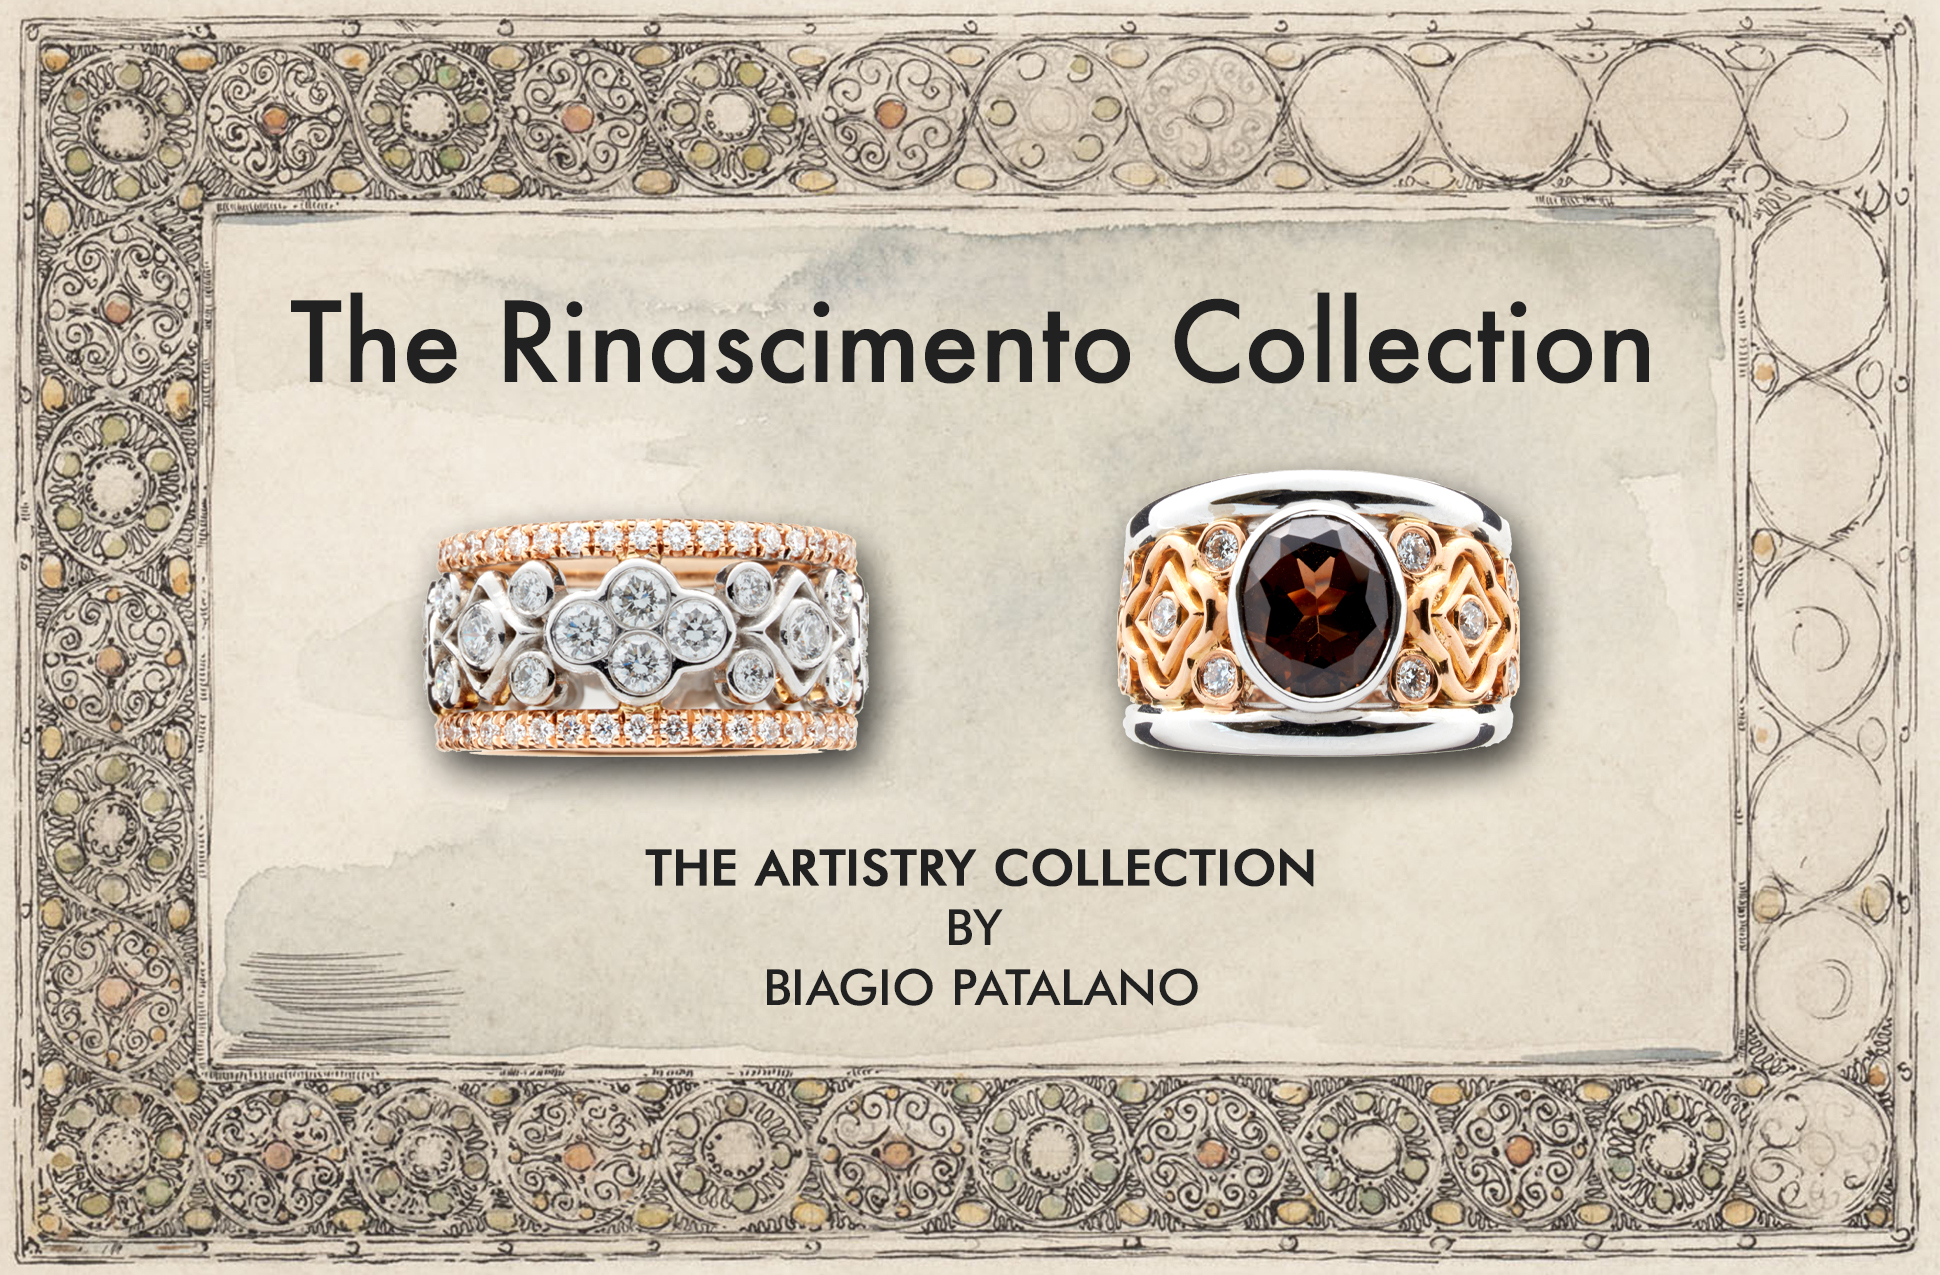 Rinascimento: Jewellery Inspired by the Art of the Renaissance Garden